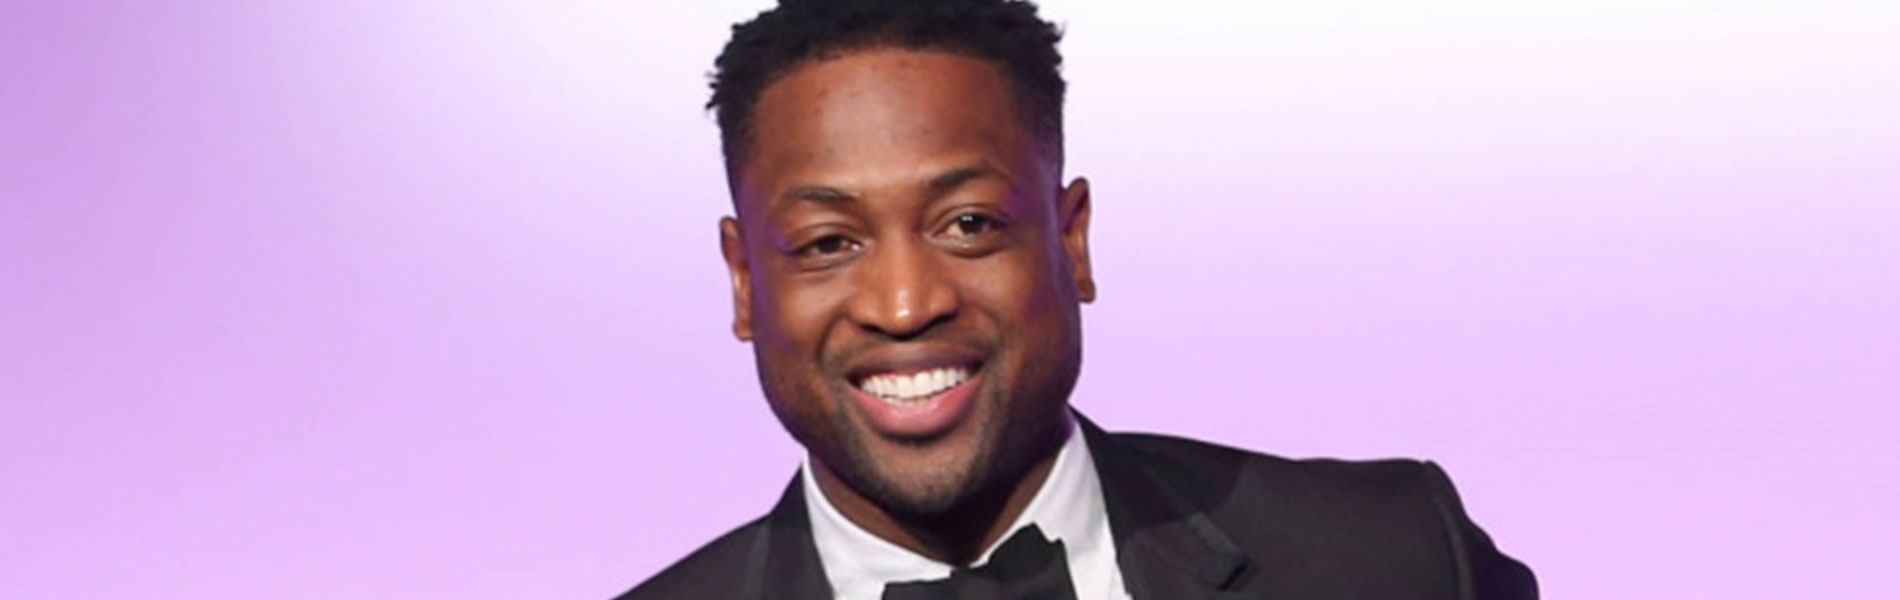 newest acbaa 26c29 NBA Star Dwyane Wade Has His Own Facebook Reality Show